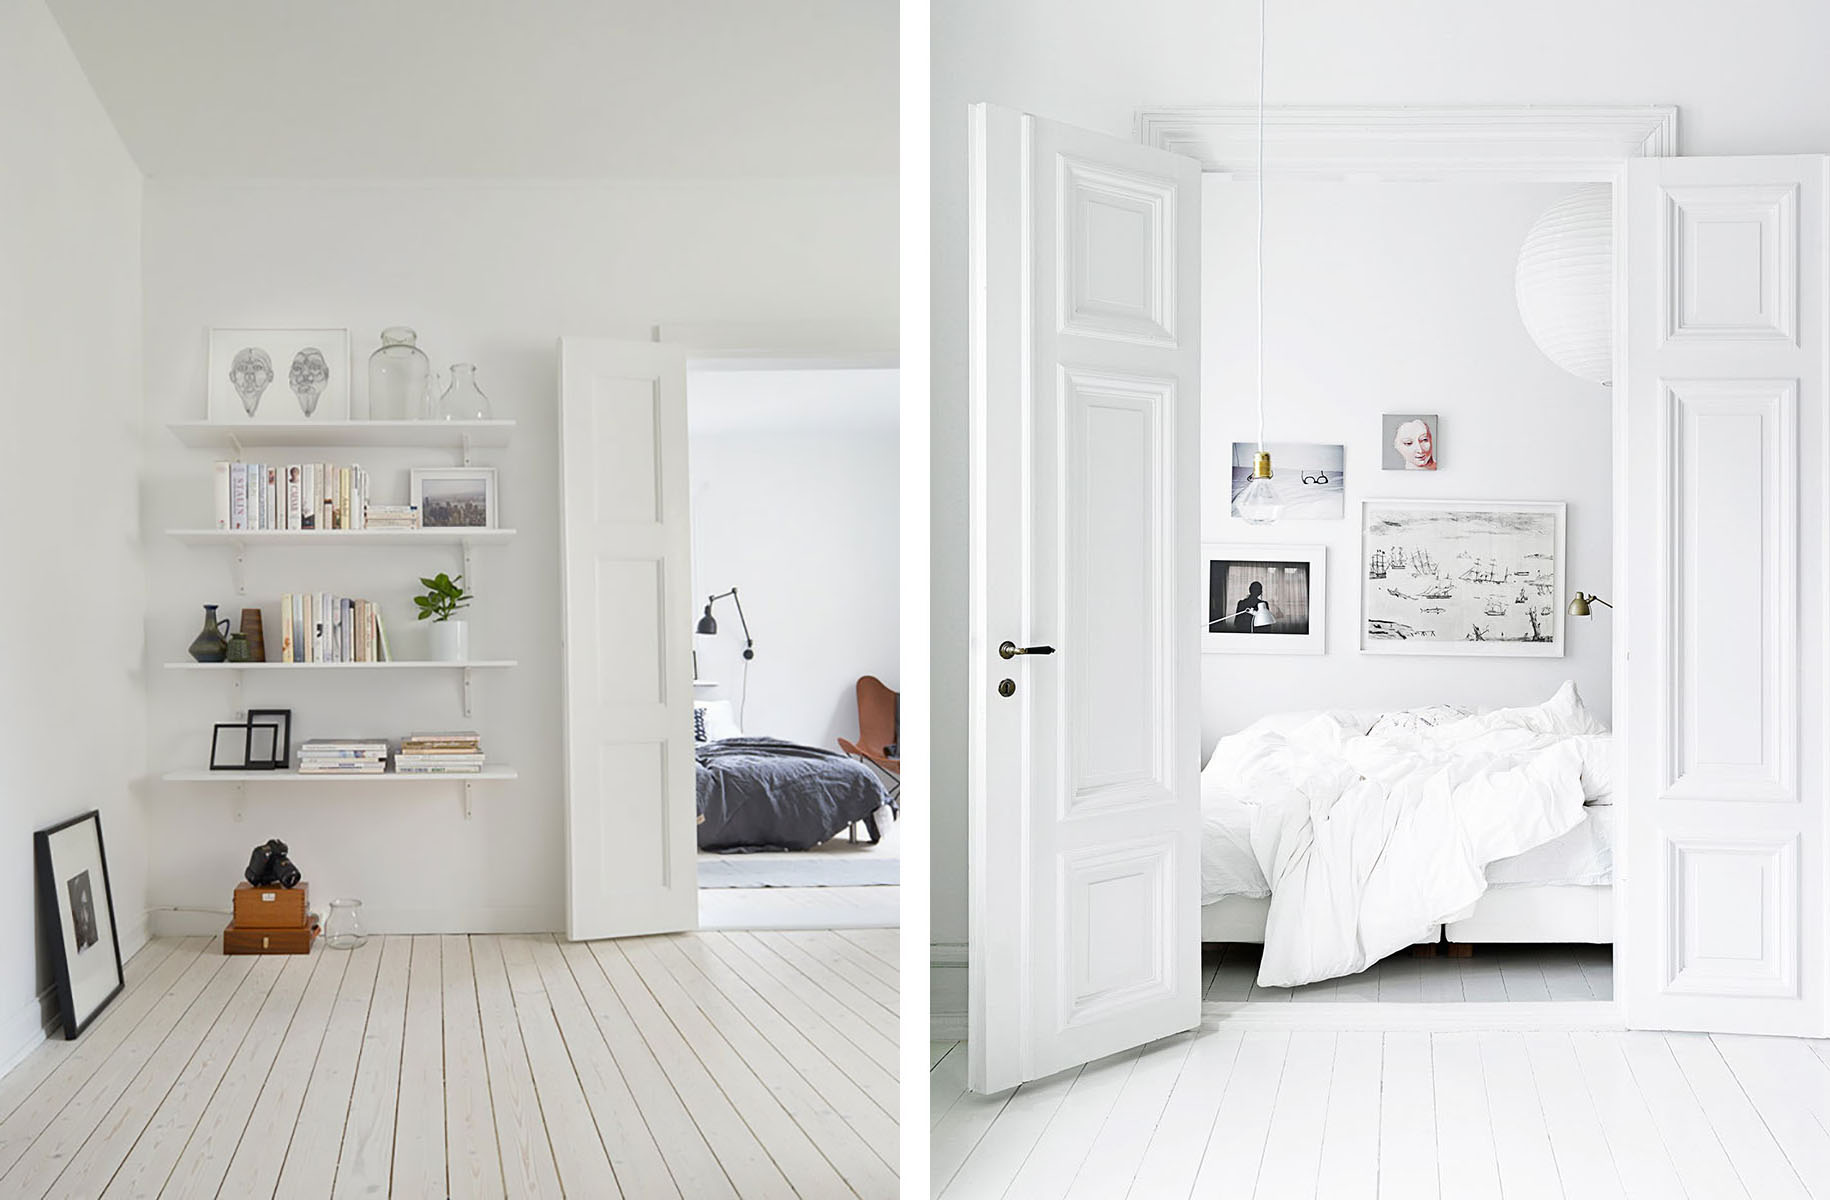 Scandinavian interior with light wood floors and white walls - Top 10 tips for adding Scandinavian style to your home | Happy Grey Lucky